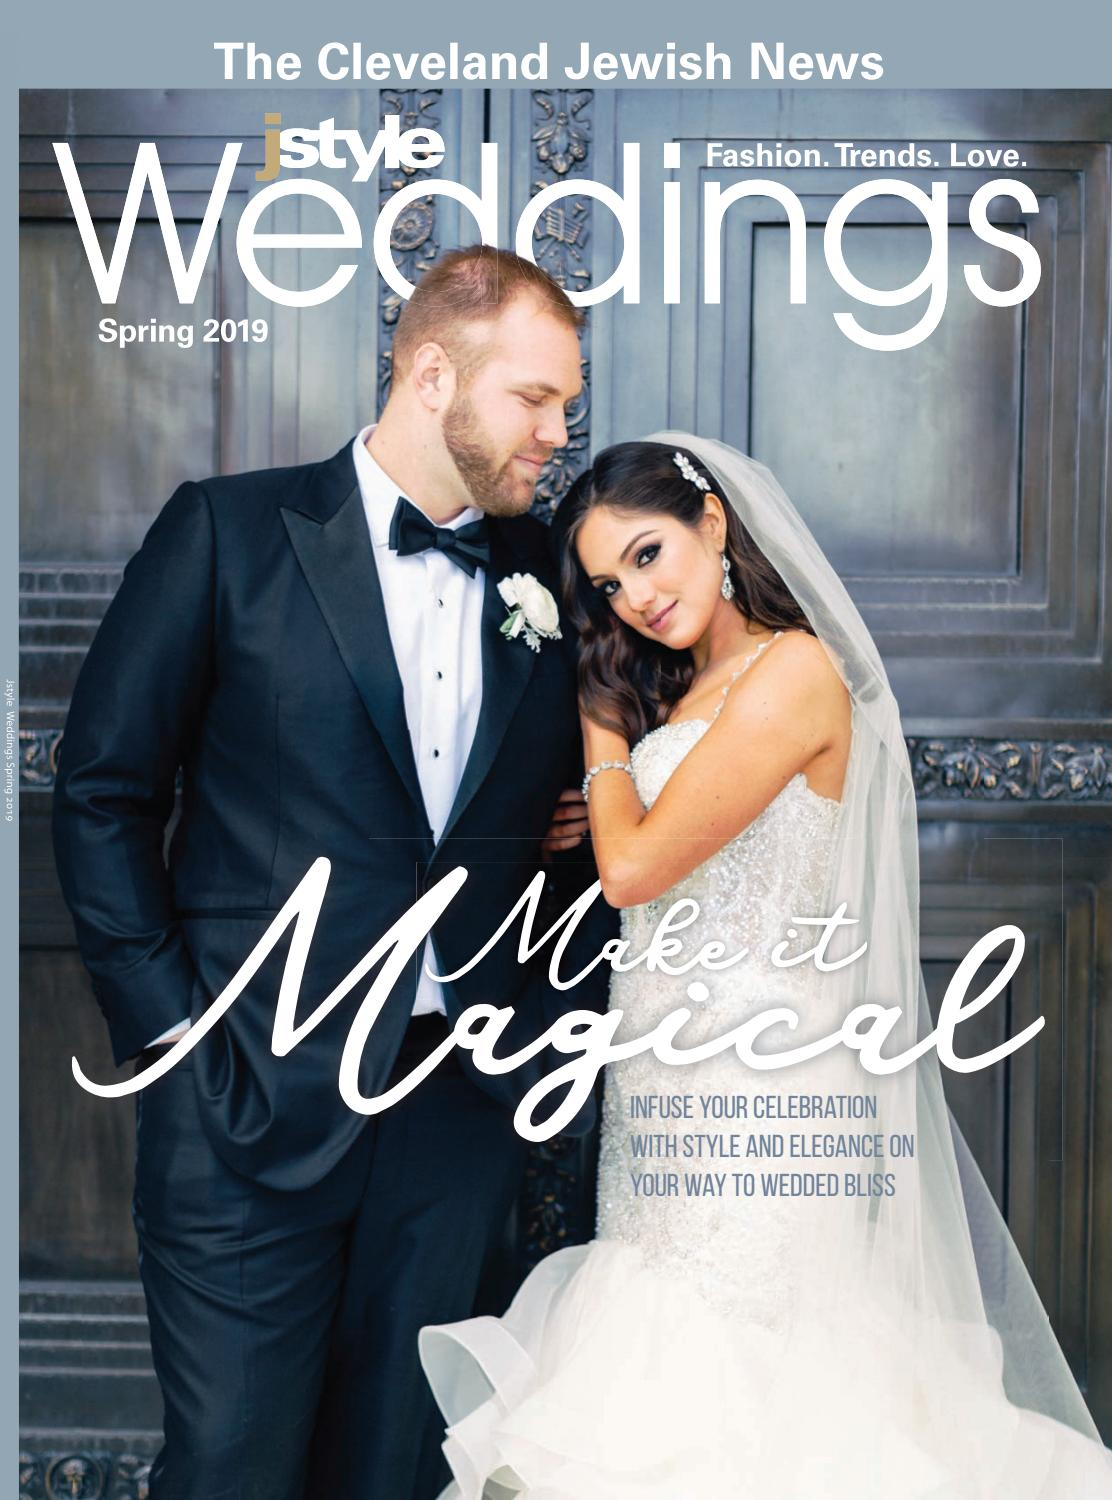 Jstyle Weddings Spring 2019 By Cleveland Jewish Publication